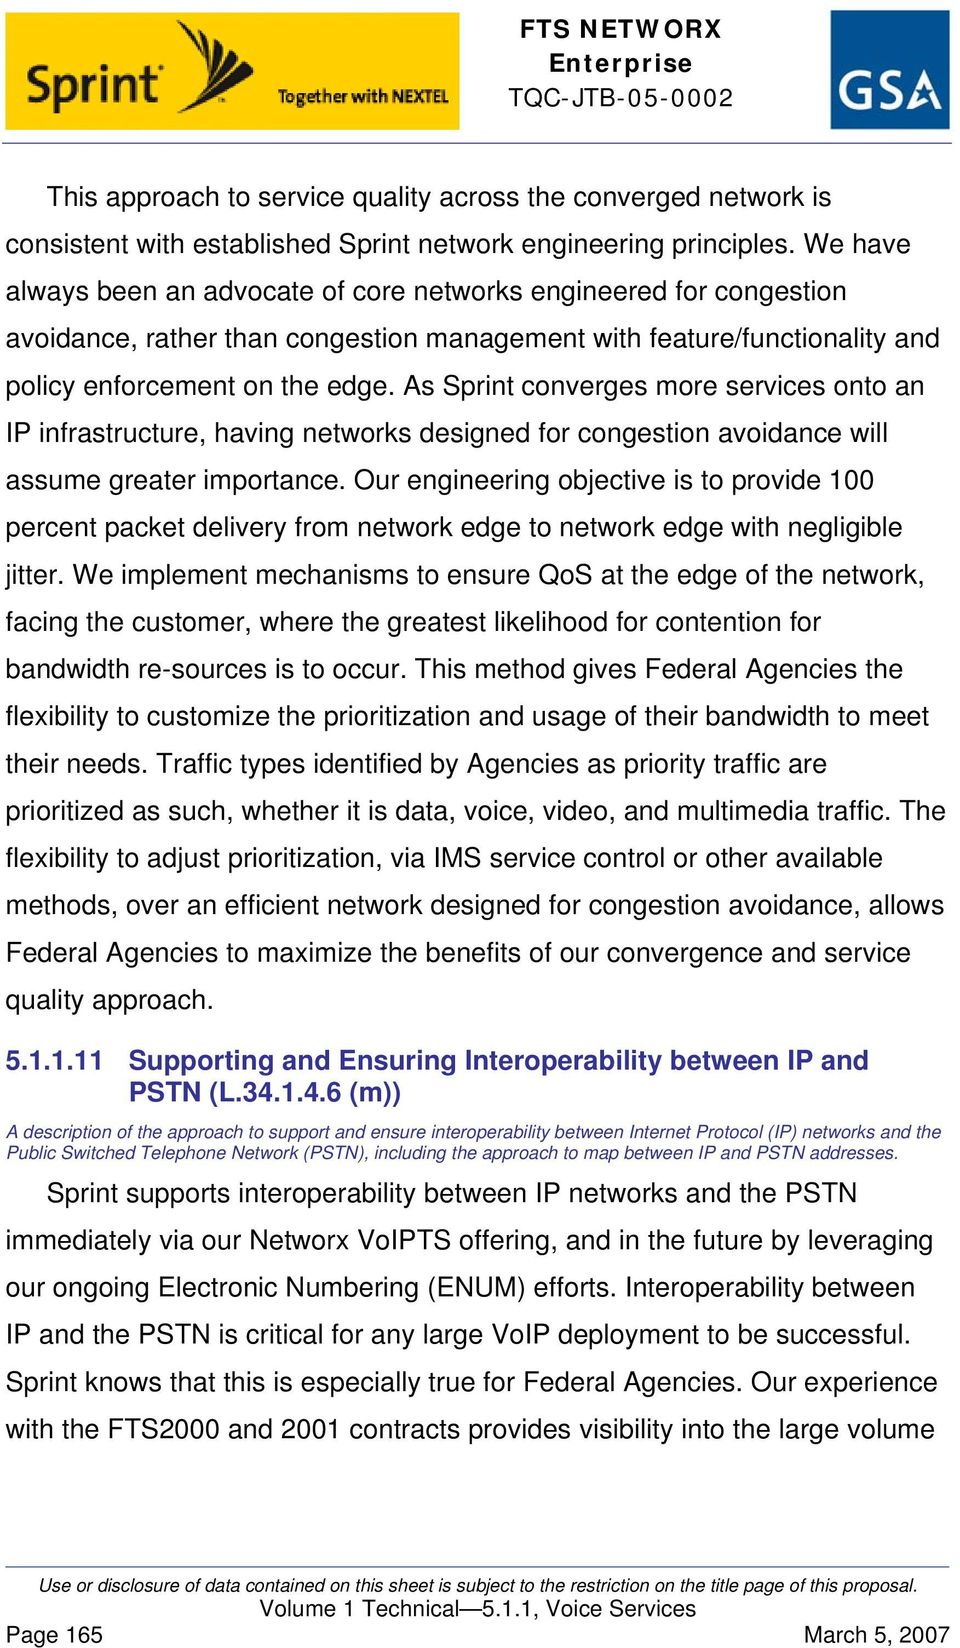 As Sprint converges more services onto an IP infrastructure, having networks designed for congestion avoidance will assume greater importance.